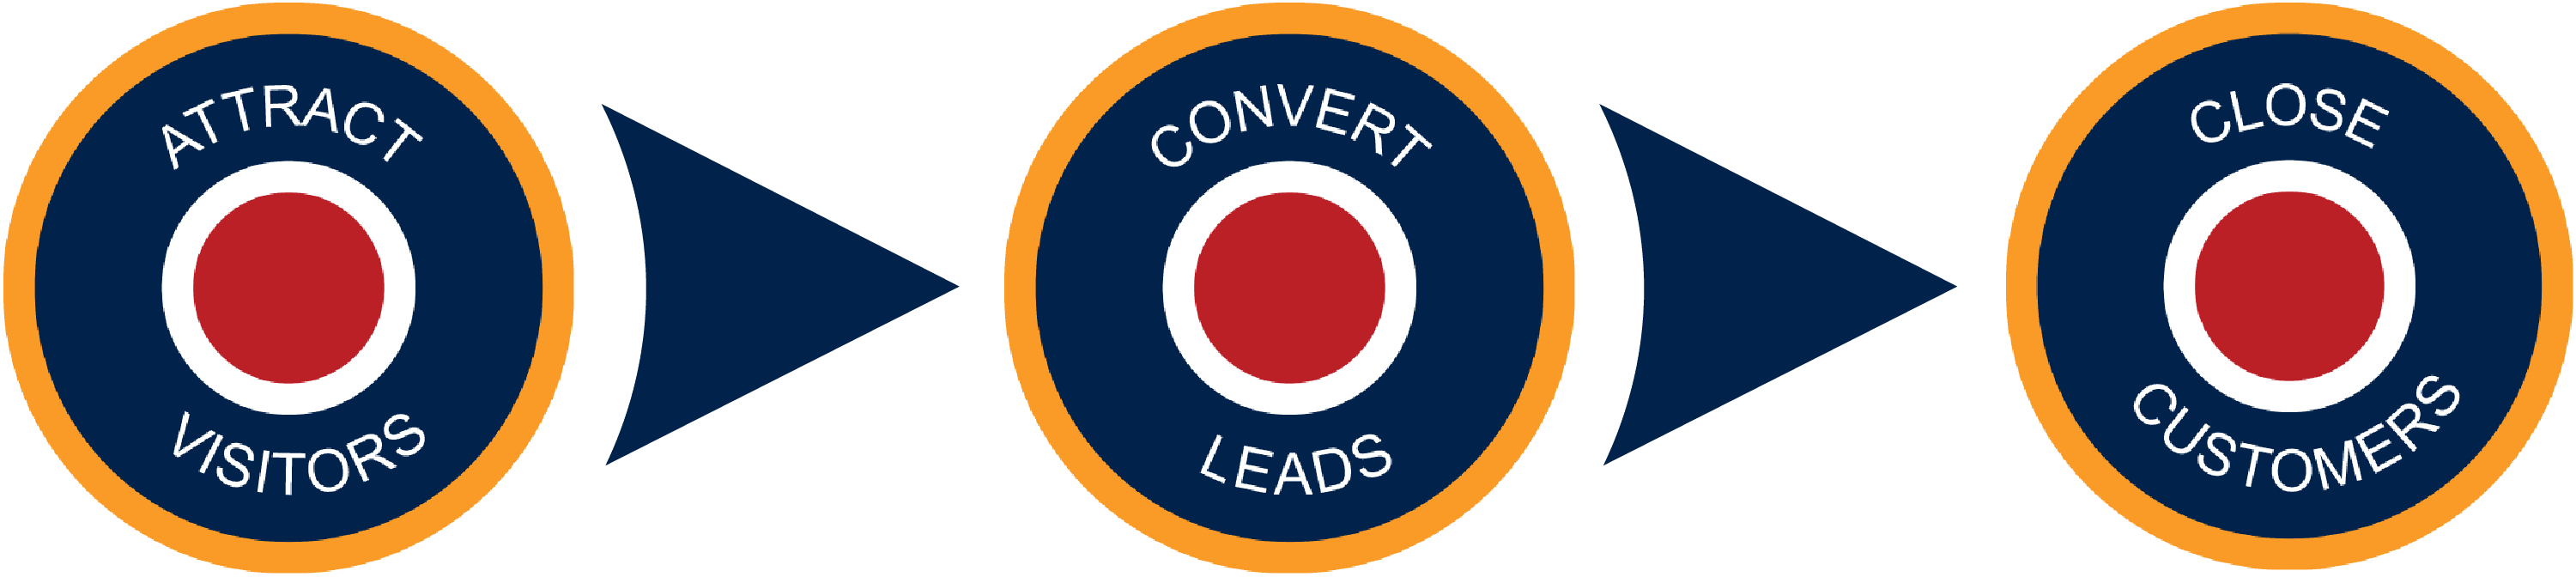 Lead generation tactics by Spitfire Inbound Agency